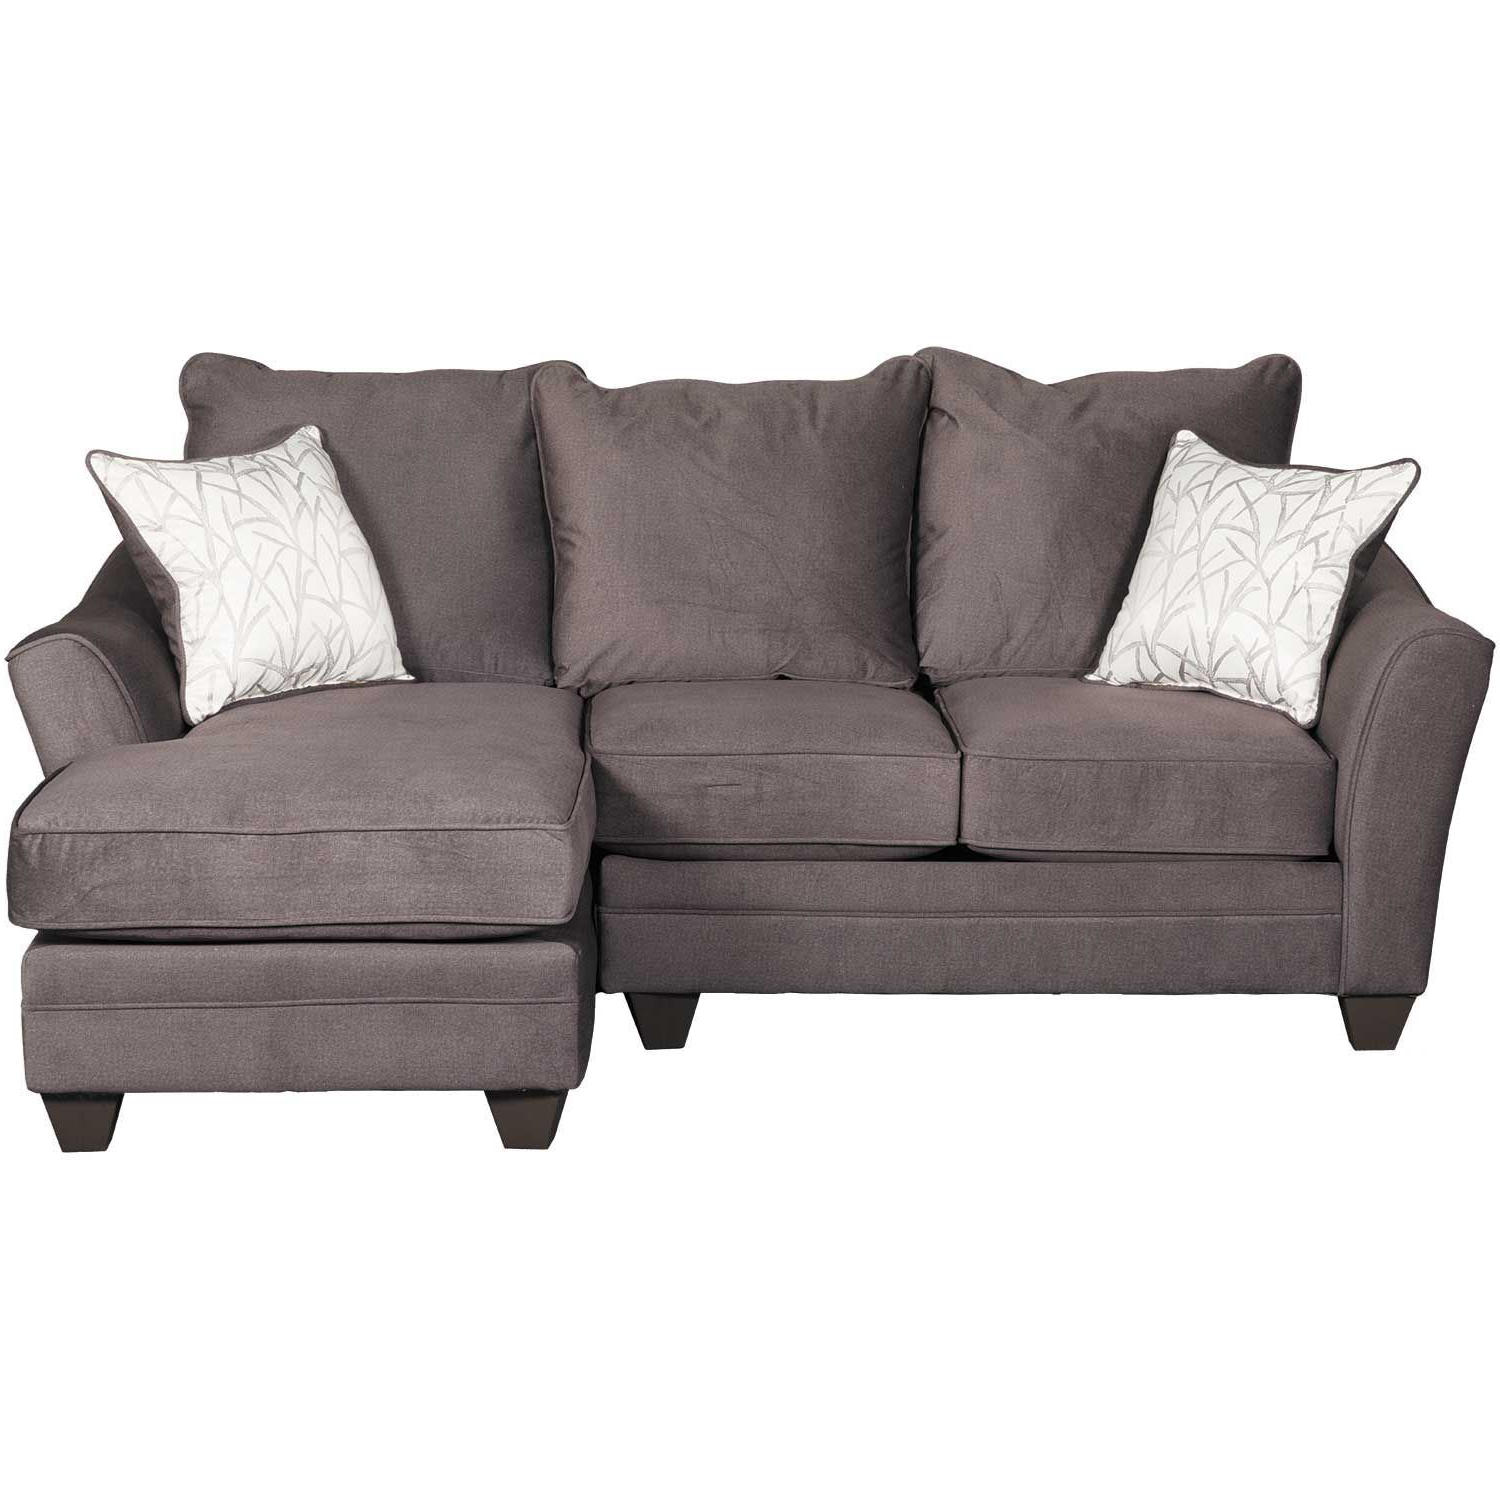 Www.topsimages Pertaining To Best And Newest Declan 3 Piece Power Reclining Sectionals With Left Facing Console Loveseat (Gallery 18 of 20)